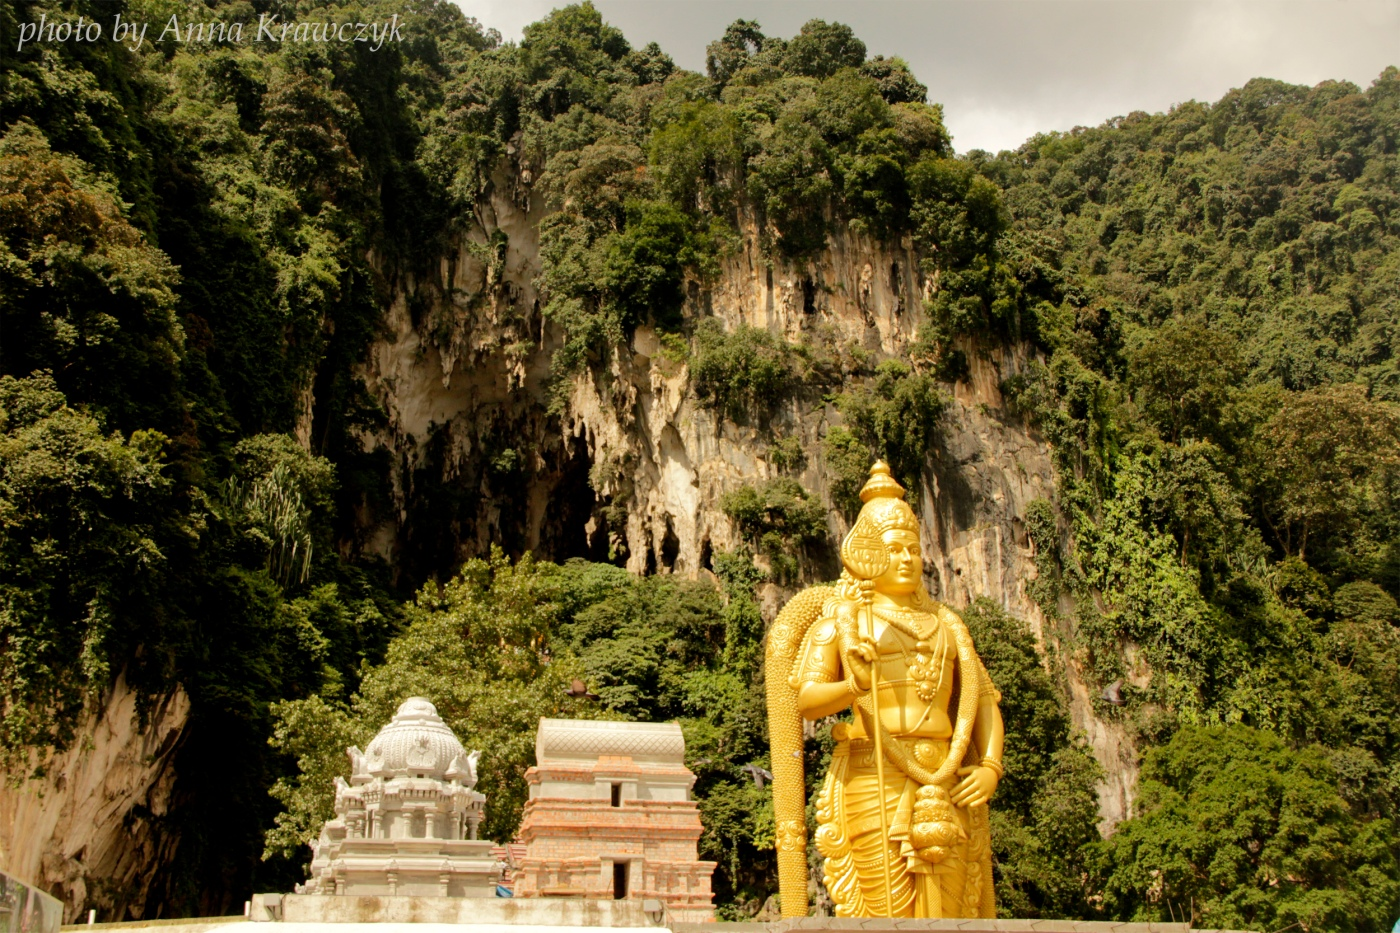 Statue of Lord Murugan - Batu Cave